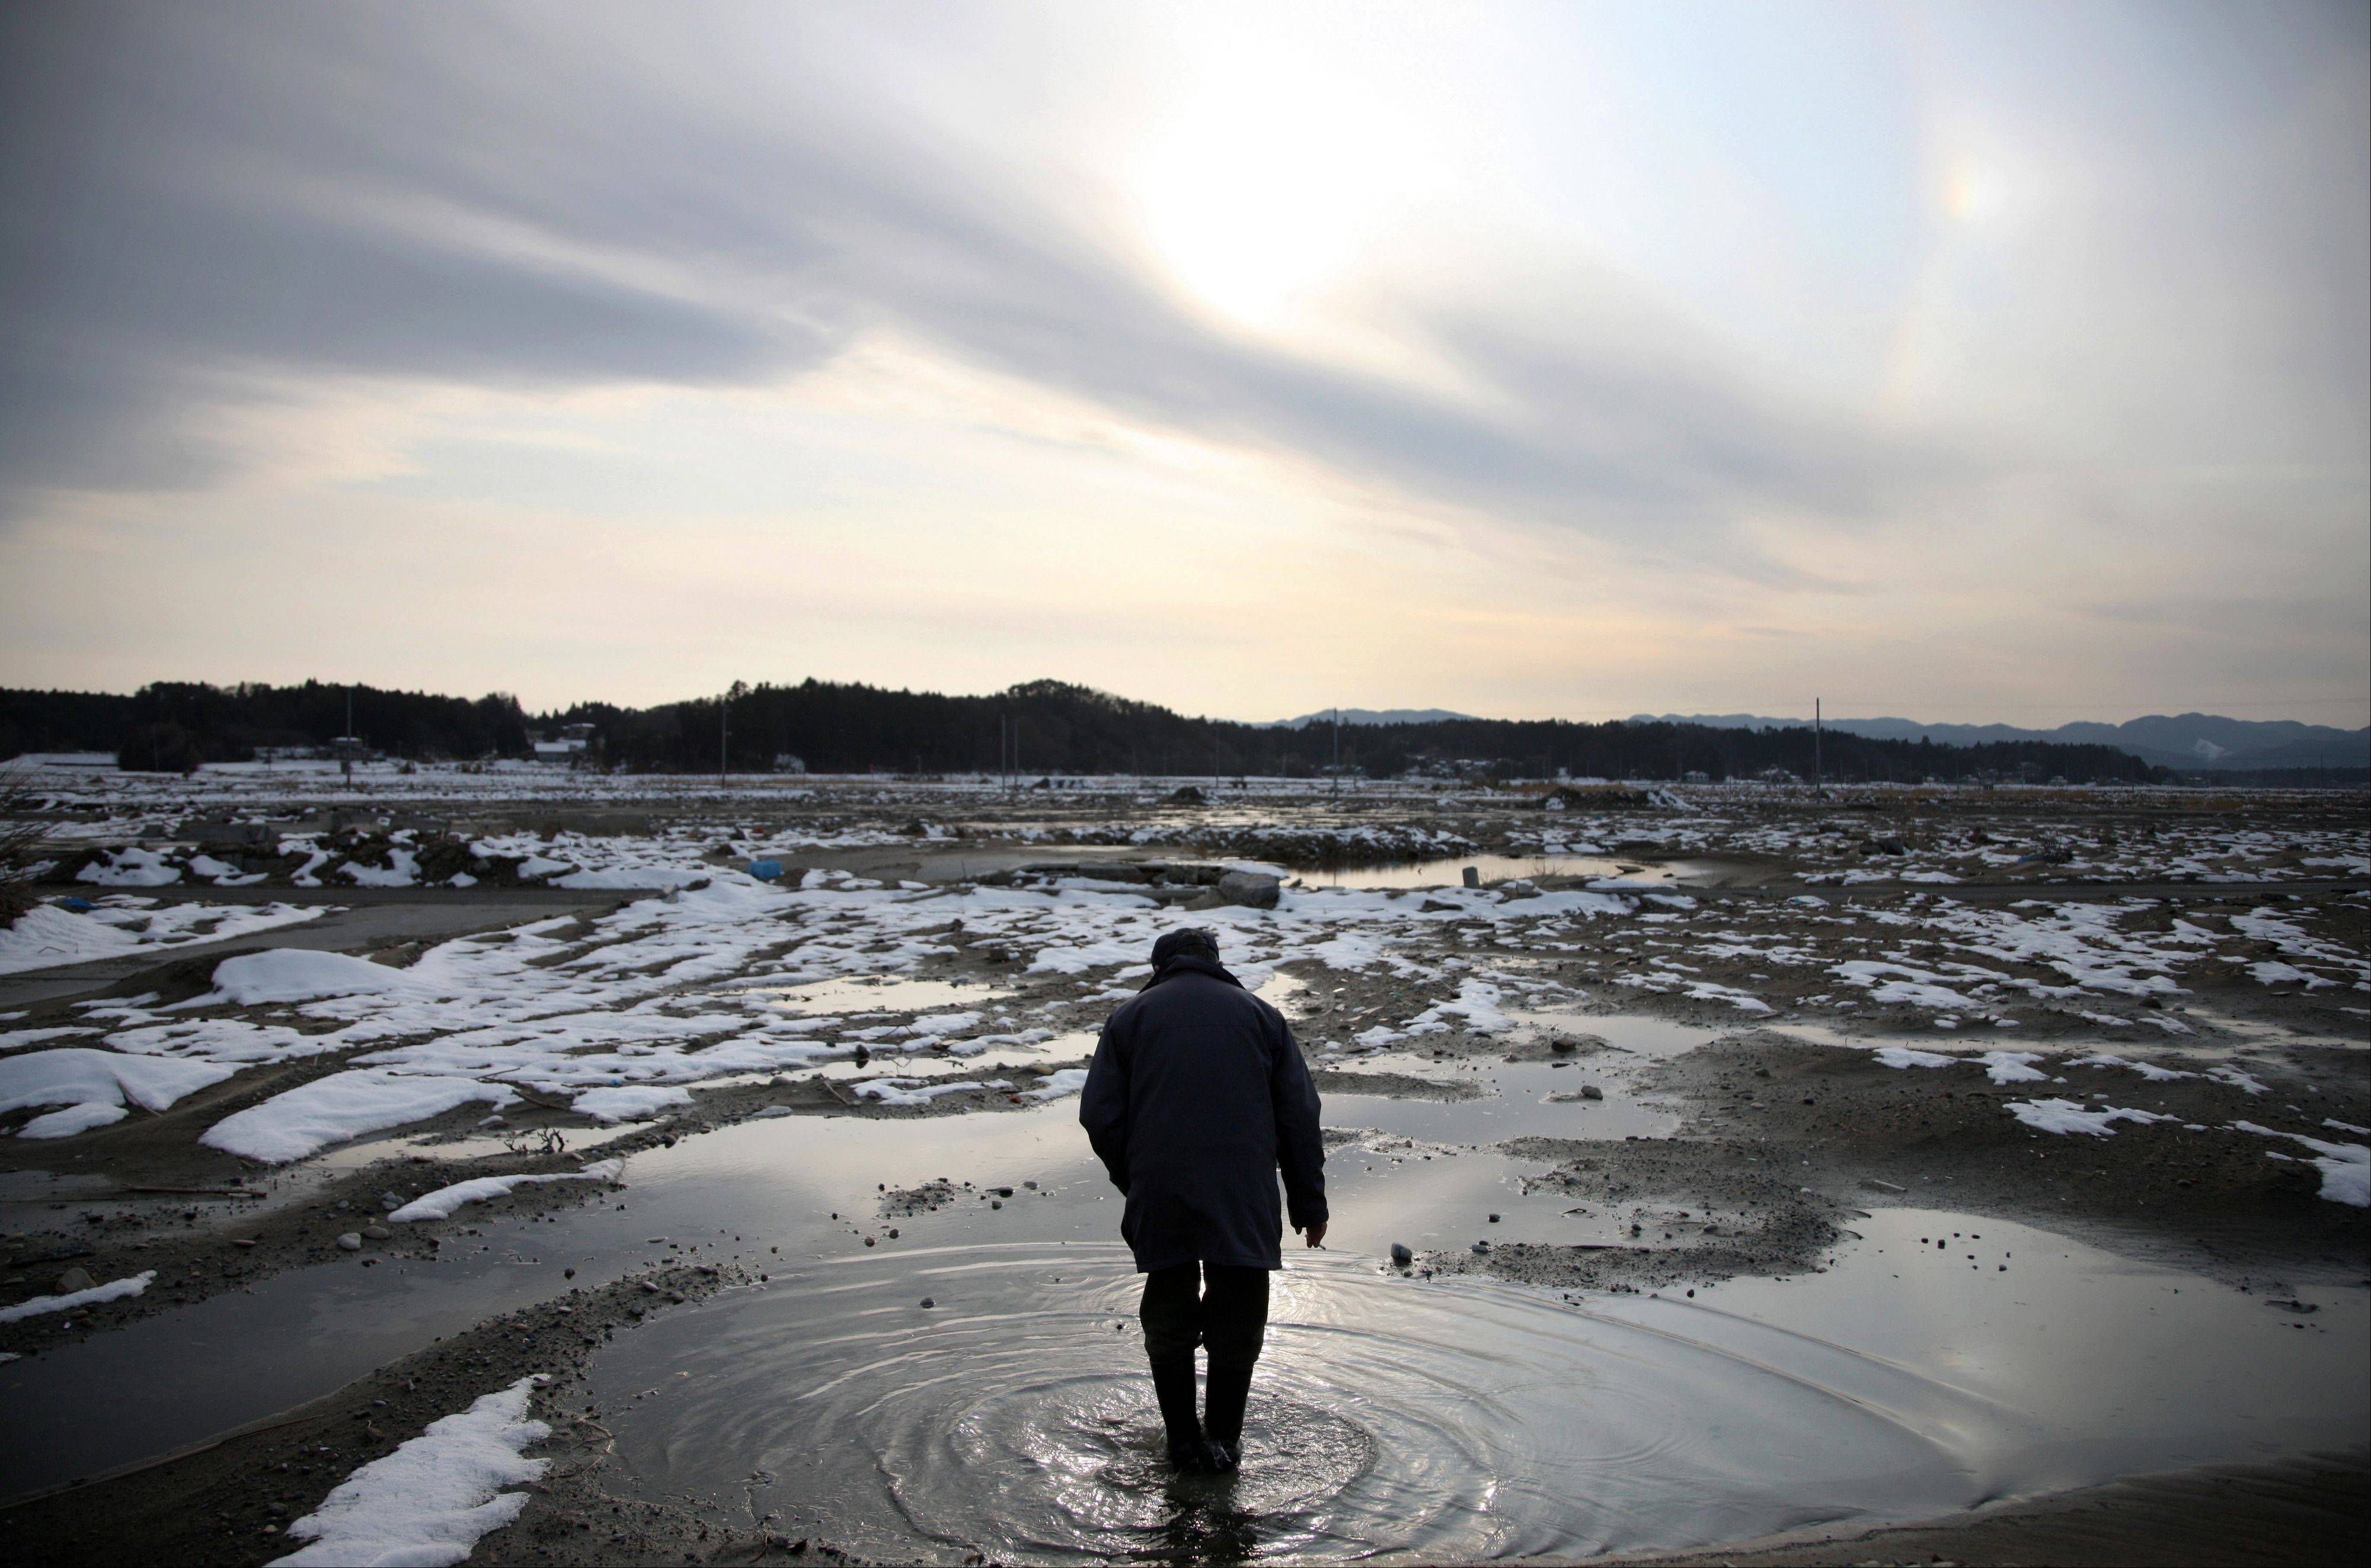 Kazushige Hayashi walks through puddles of water at the site of where his house stood before the March 11 earthquake and tsunami in Minamisoma City, Fukushima Prefecture, Japan, on Sunday, March 4, 2012. Japan marks the one-year anniversary of the earthquake and tsunami this month for the 15,845 dead and the 3,368 still missing.